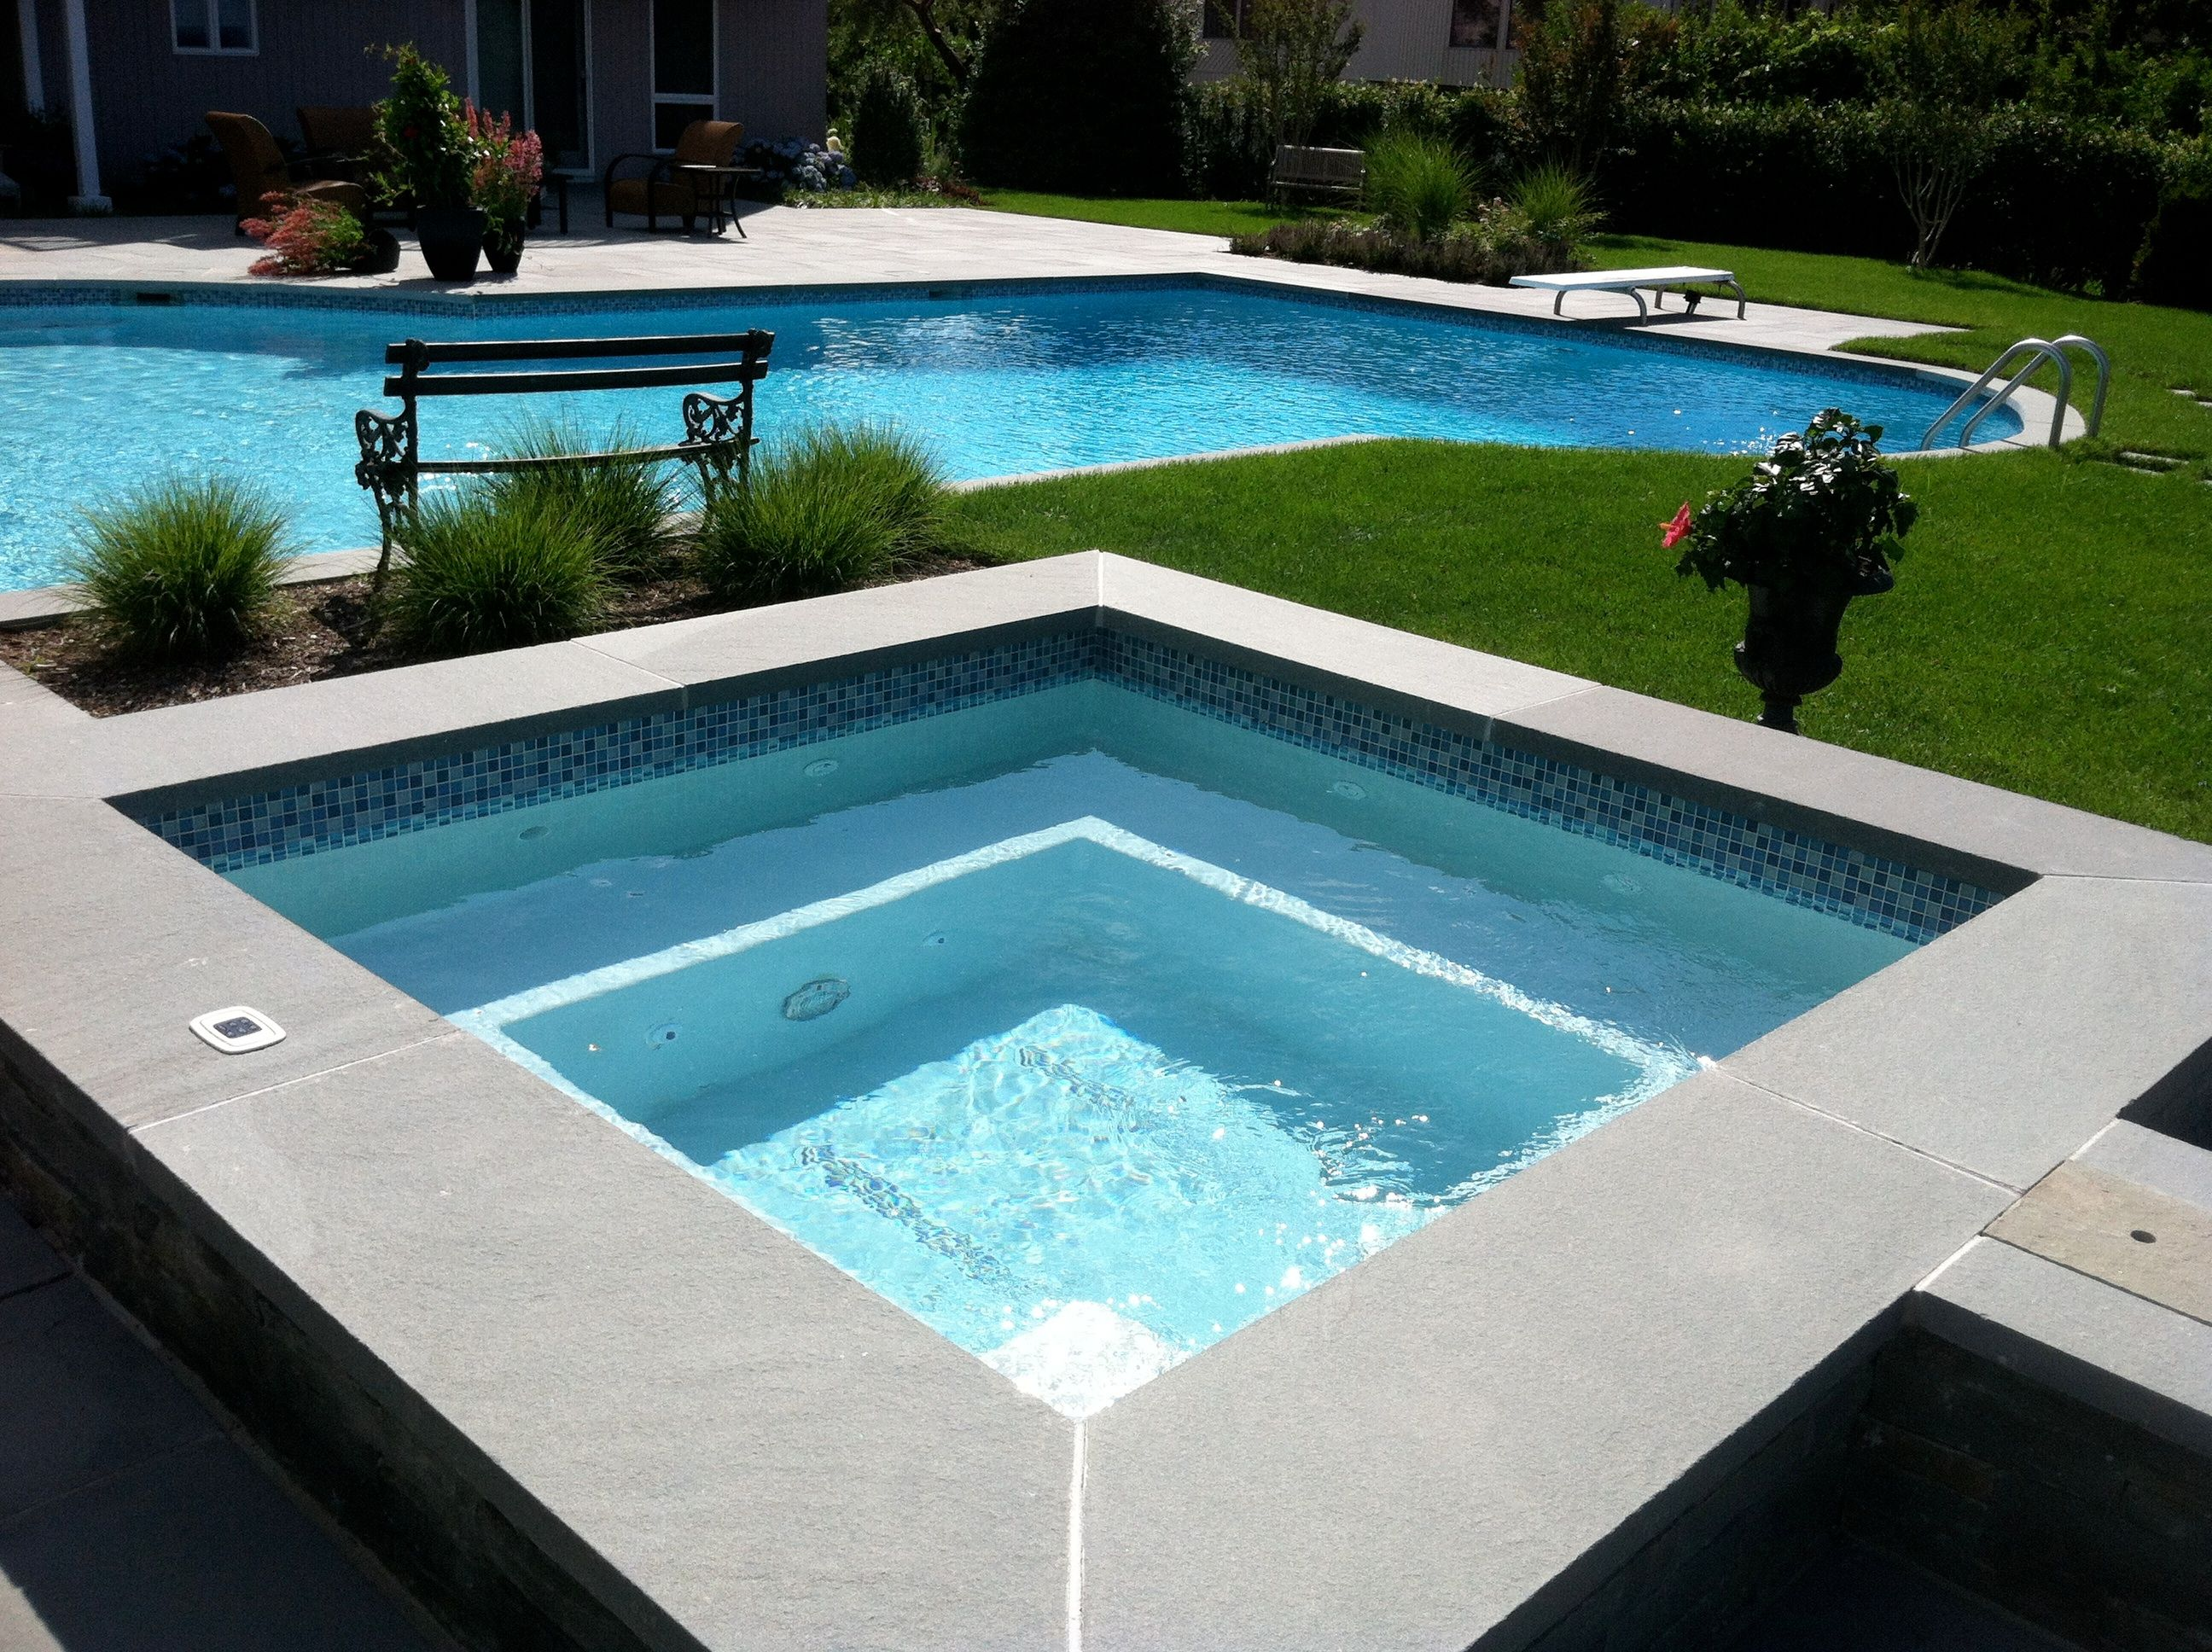 Stand alone gunite spa and fee form pool with glass tile and